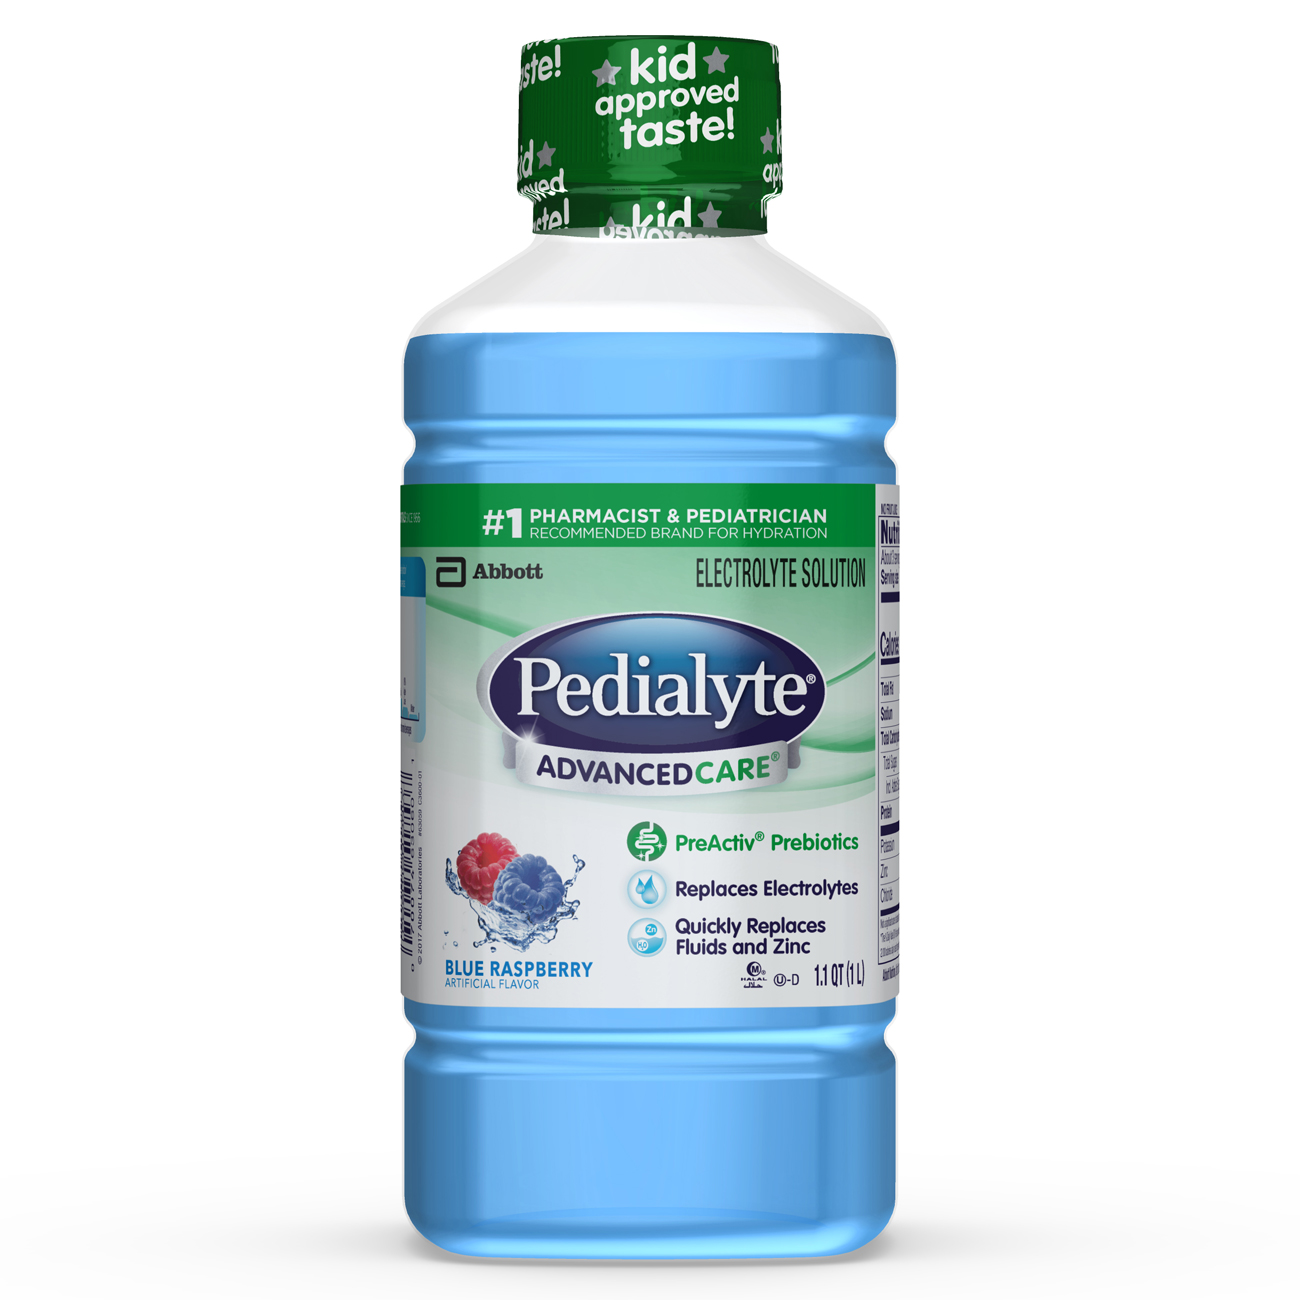 Pedialyte AdvancedCare Electrolyte Solution with PreActiv Prebiotics, Hydration Drink, Blue Raspberry, 1 Liter, 8 Count